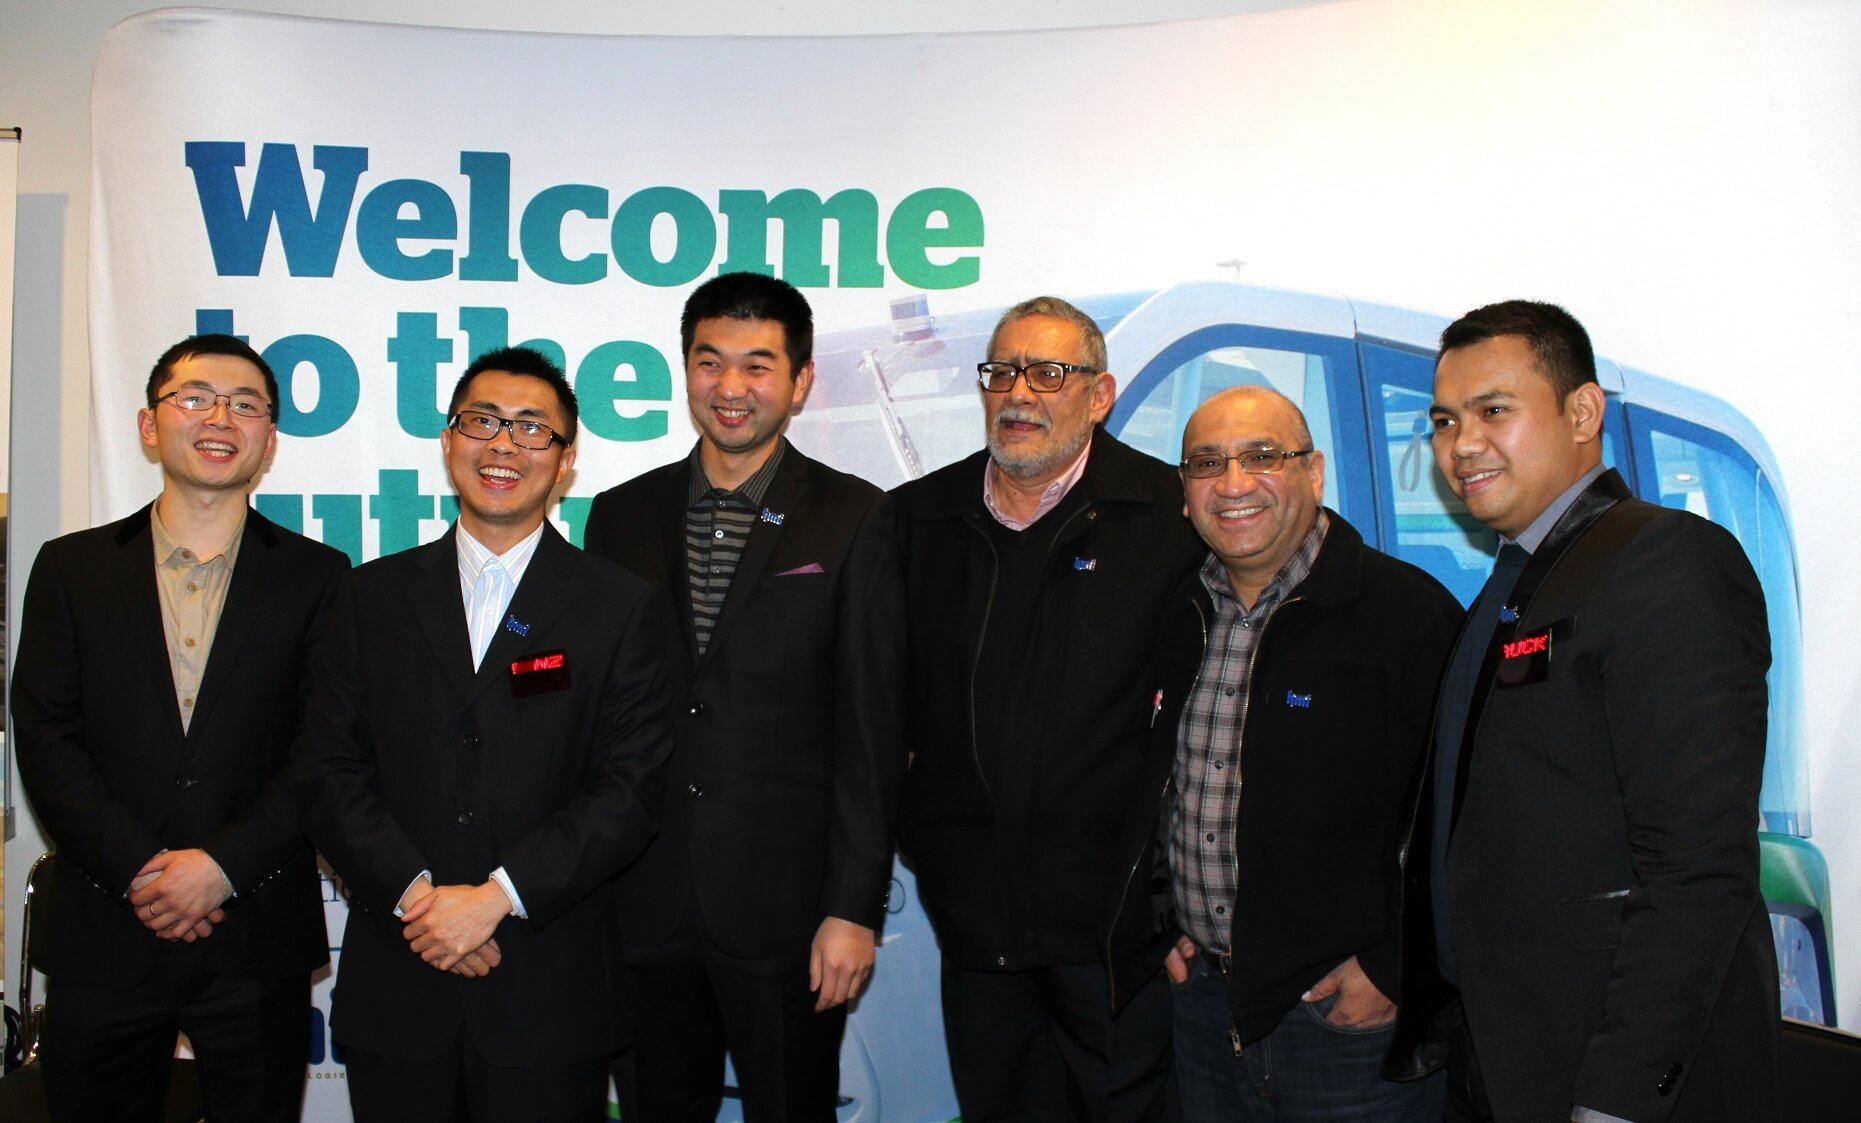 HMI Technologies' Service and Delivery team members from Auckland and Christchurch